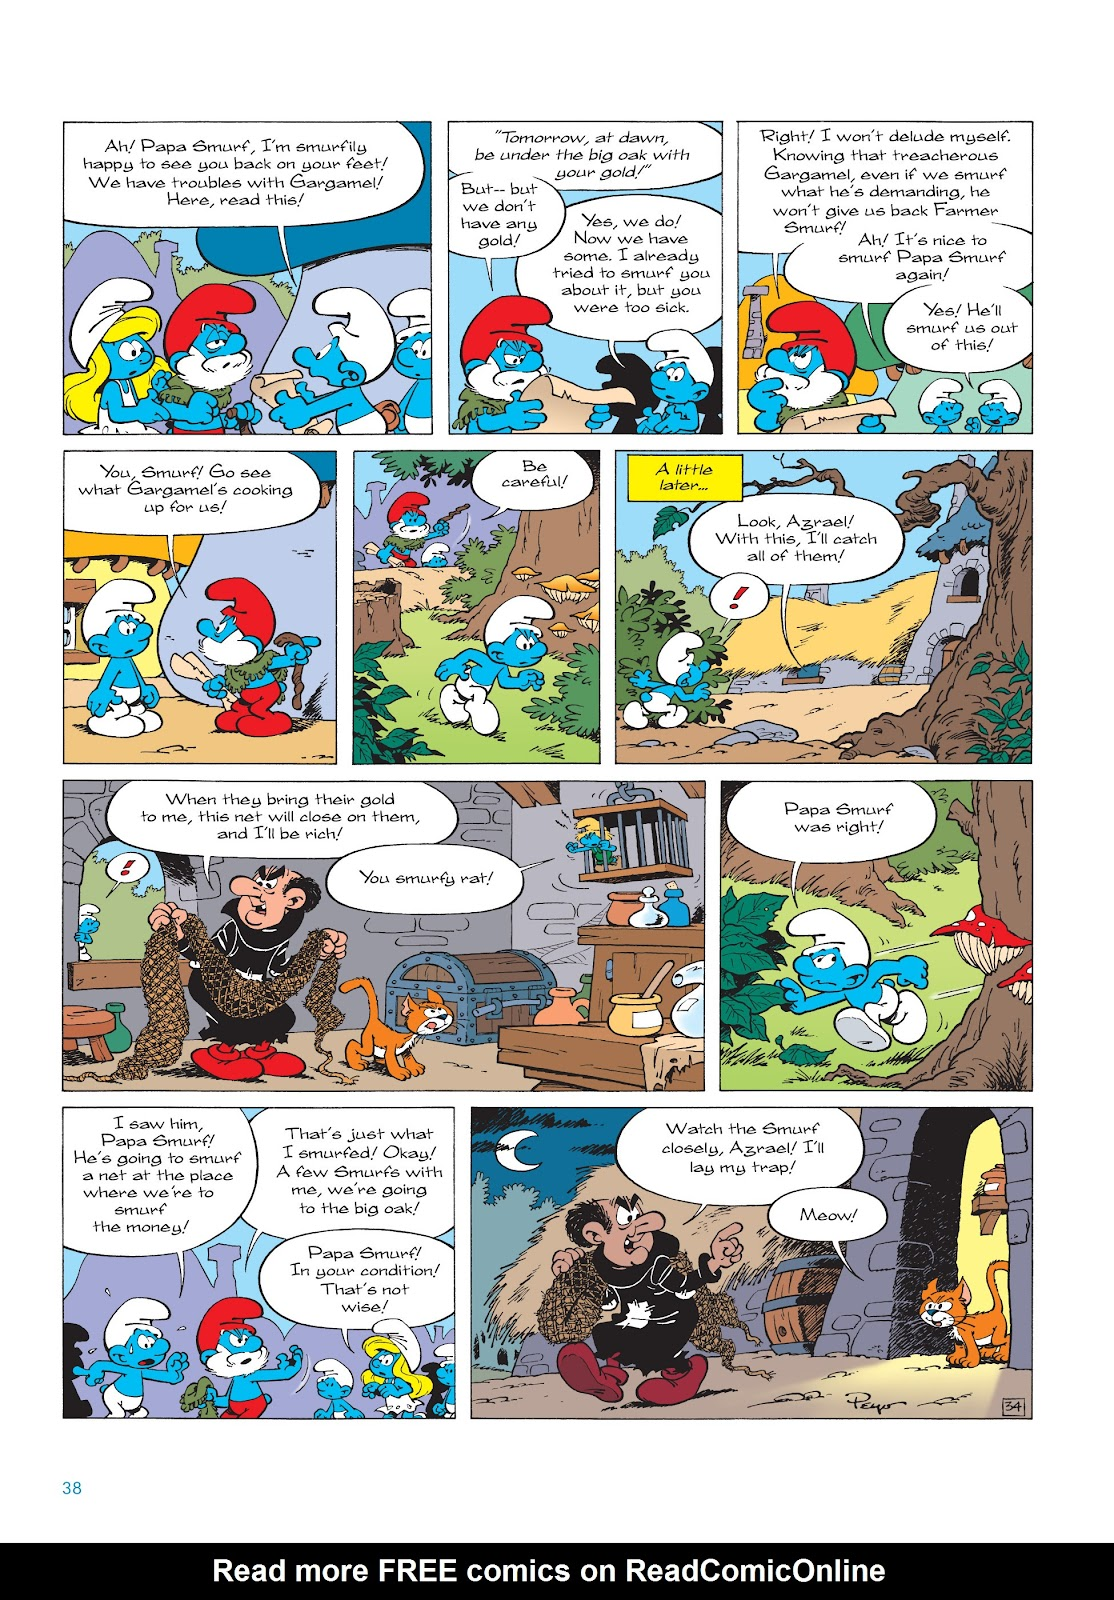 Read online The Smurfs comic -  Issue #18 - 38